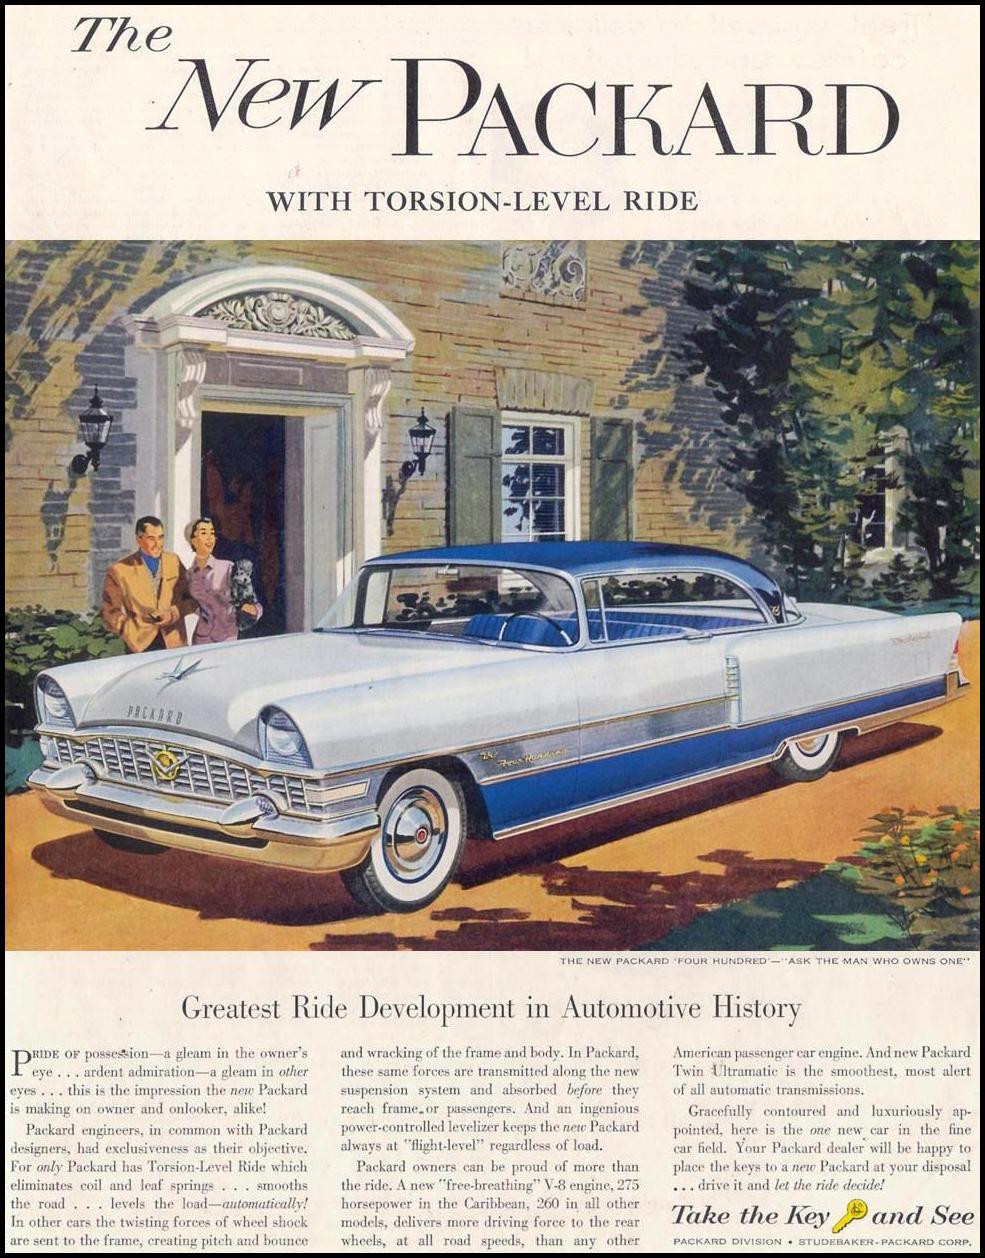 PACKARD AUTOMOBILES SATURDAY EVENING POST 06/04/1955 p. 5